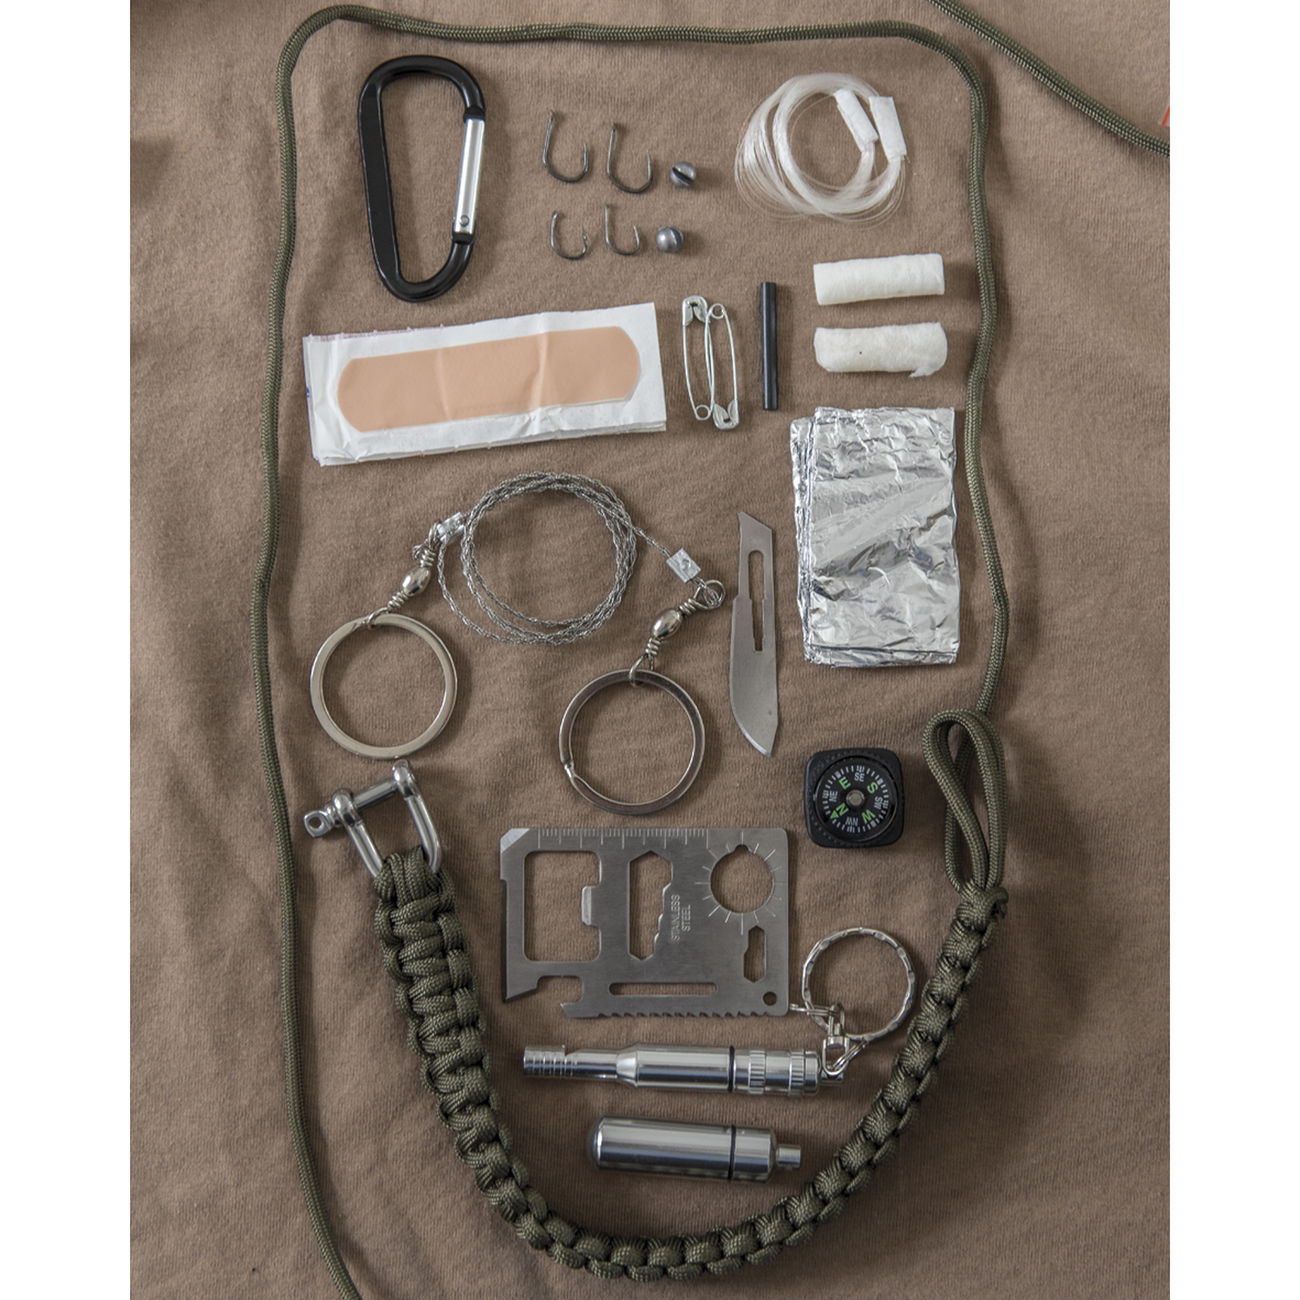 Mil-Tec Paracord Survival Kit large schwarz 1